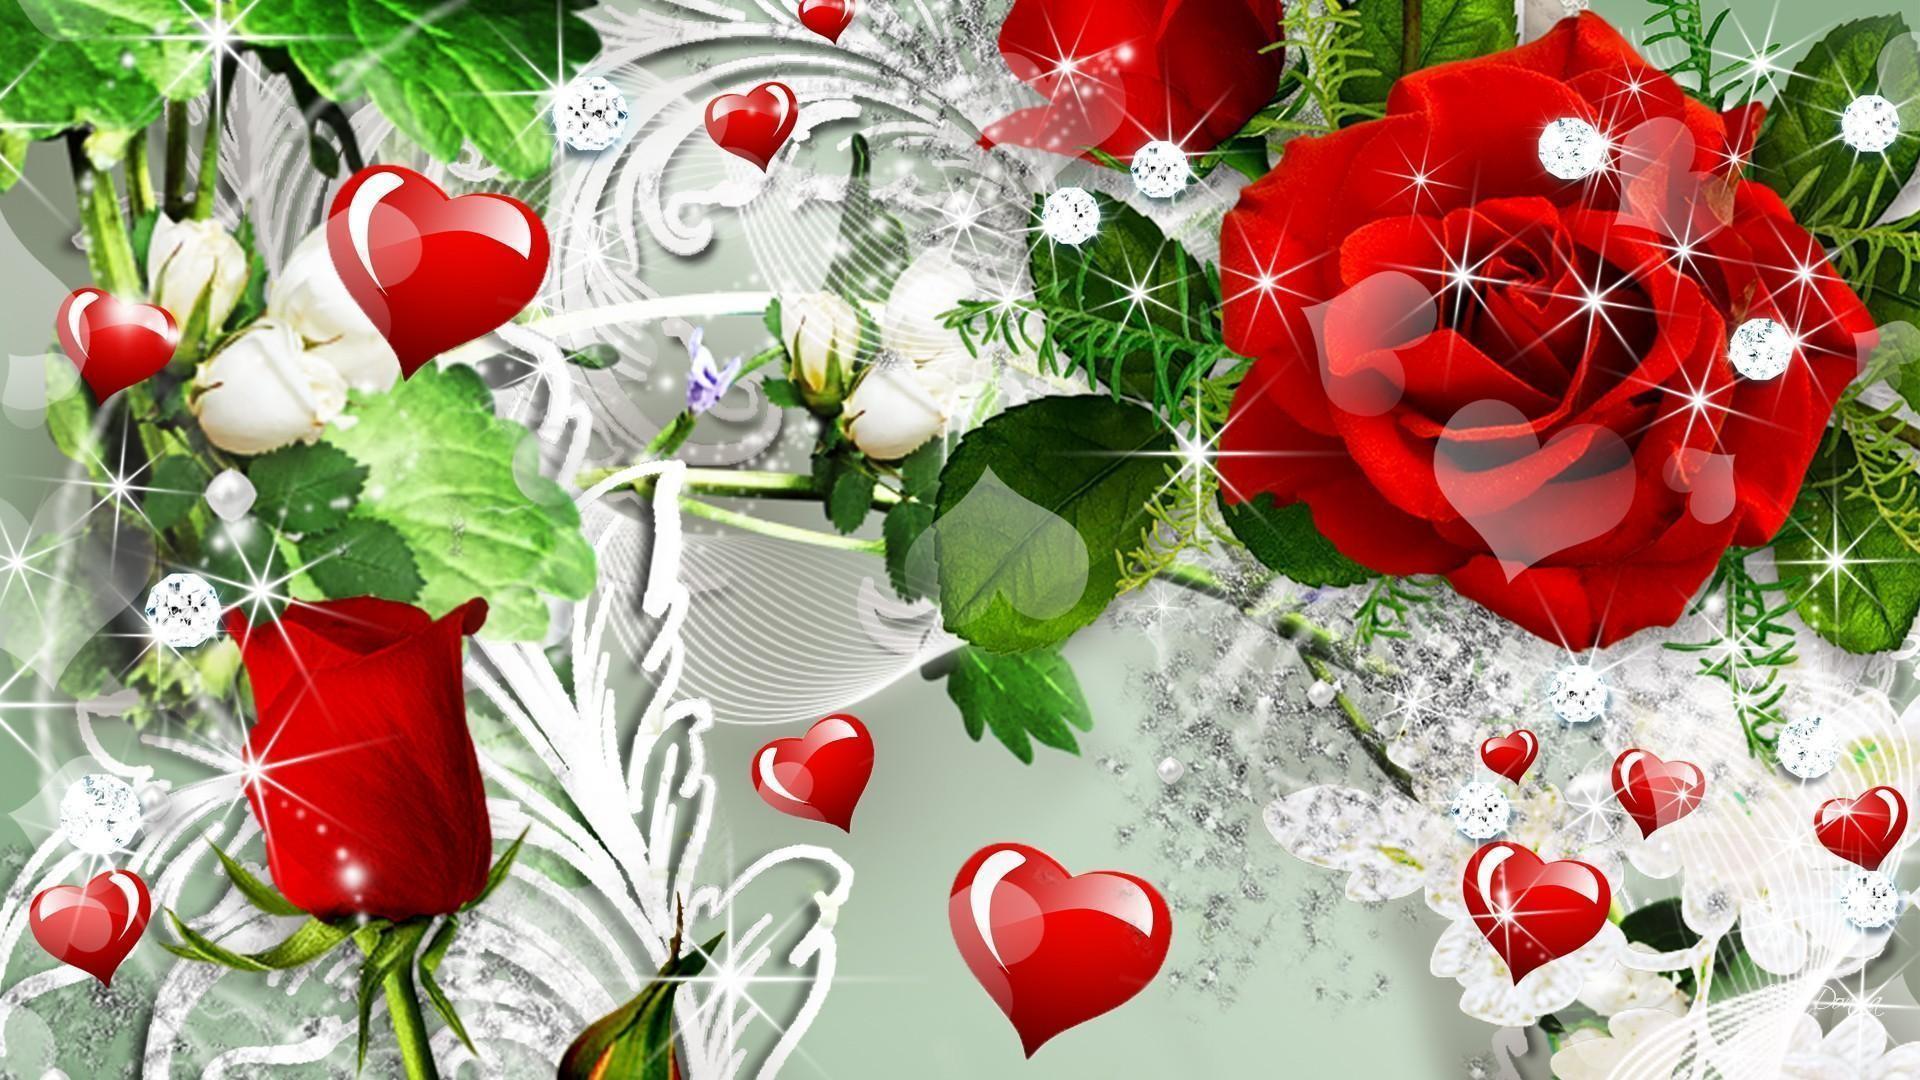 1920x1080 Wallpapers For > Red Roses Wallpaper Heart